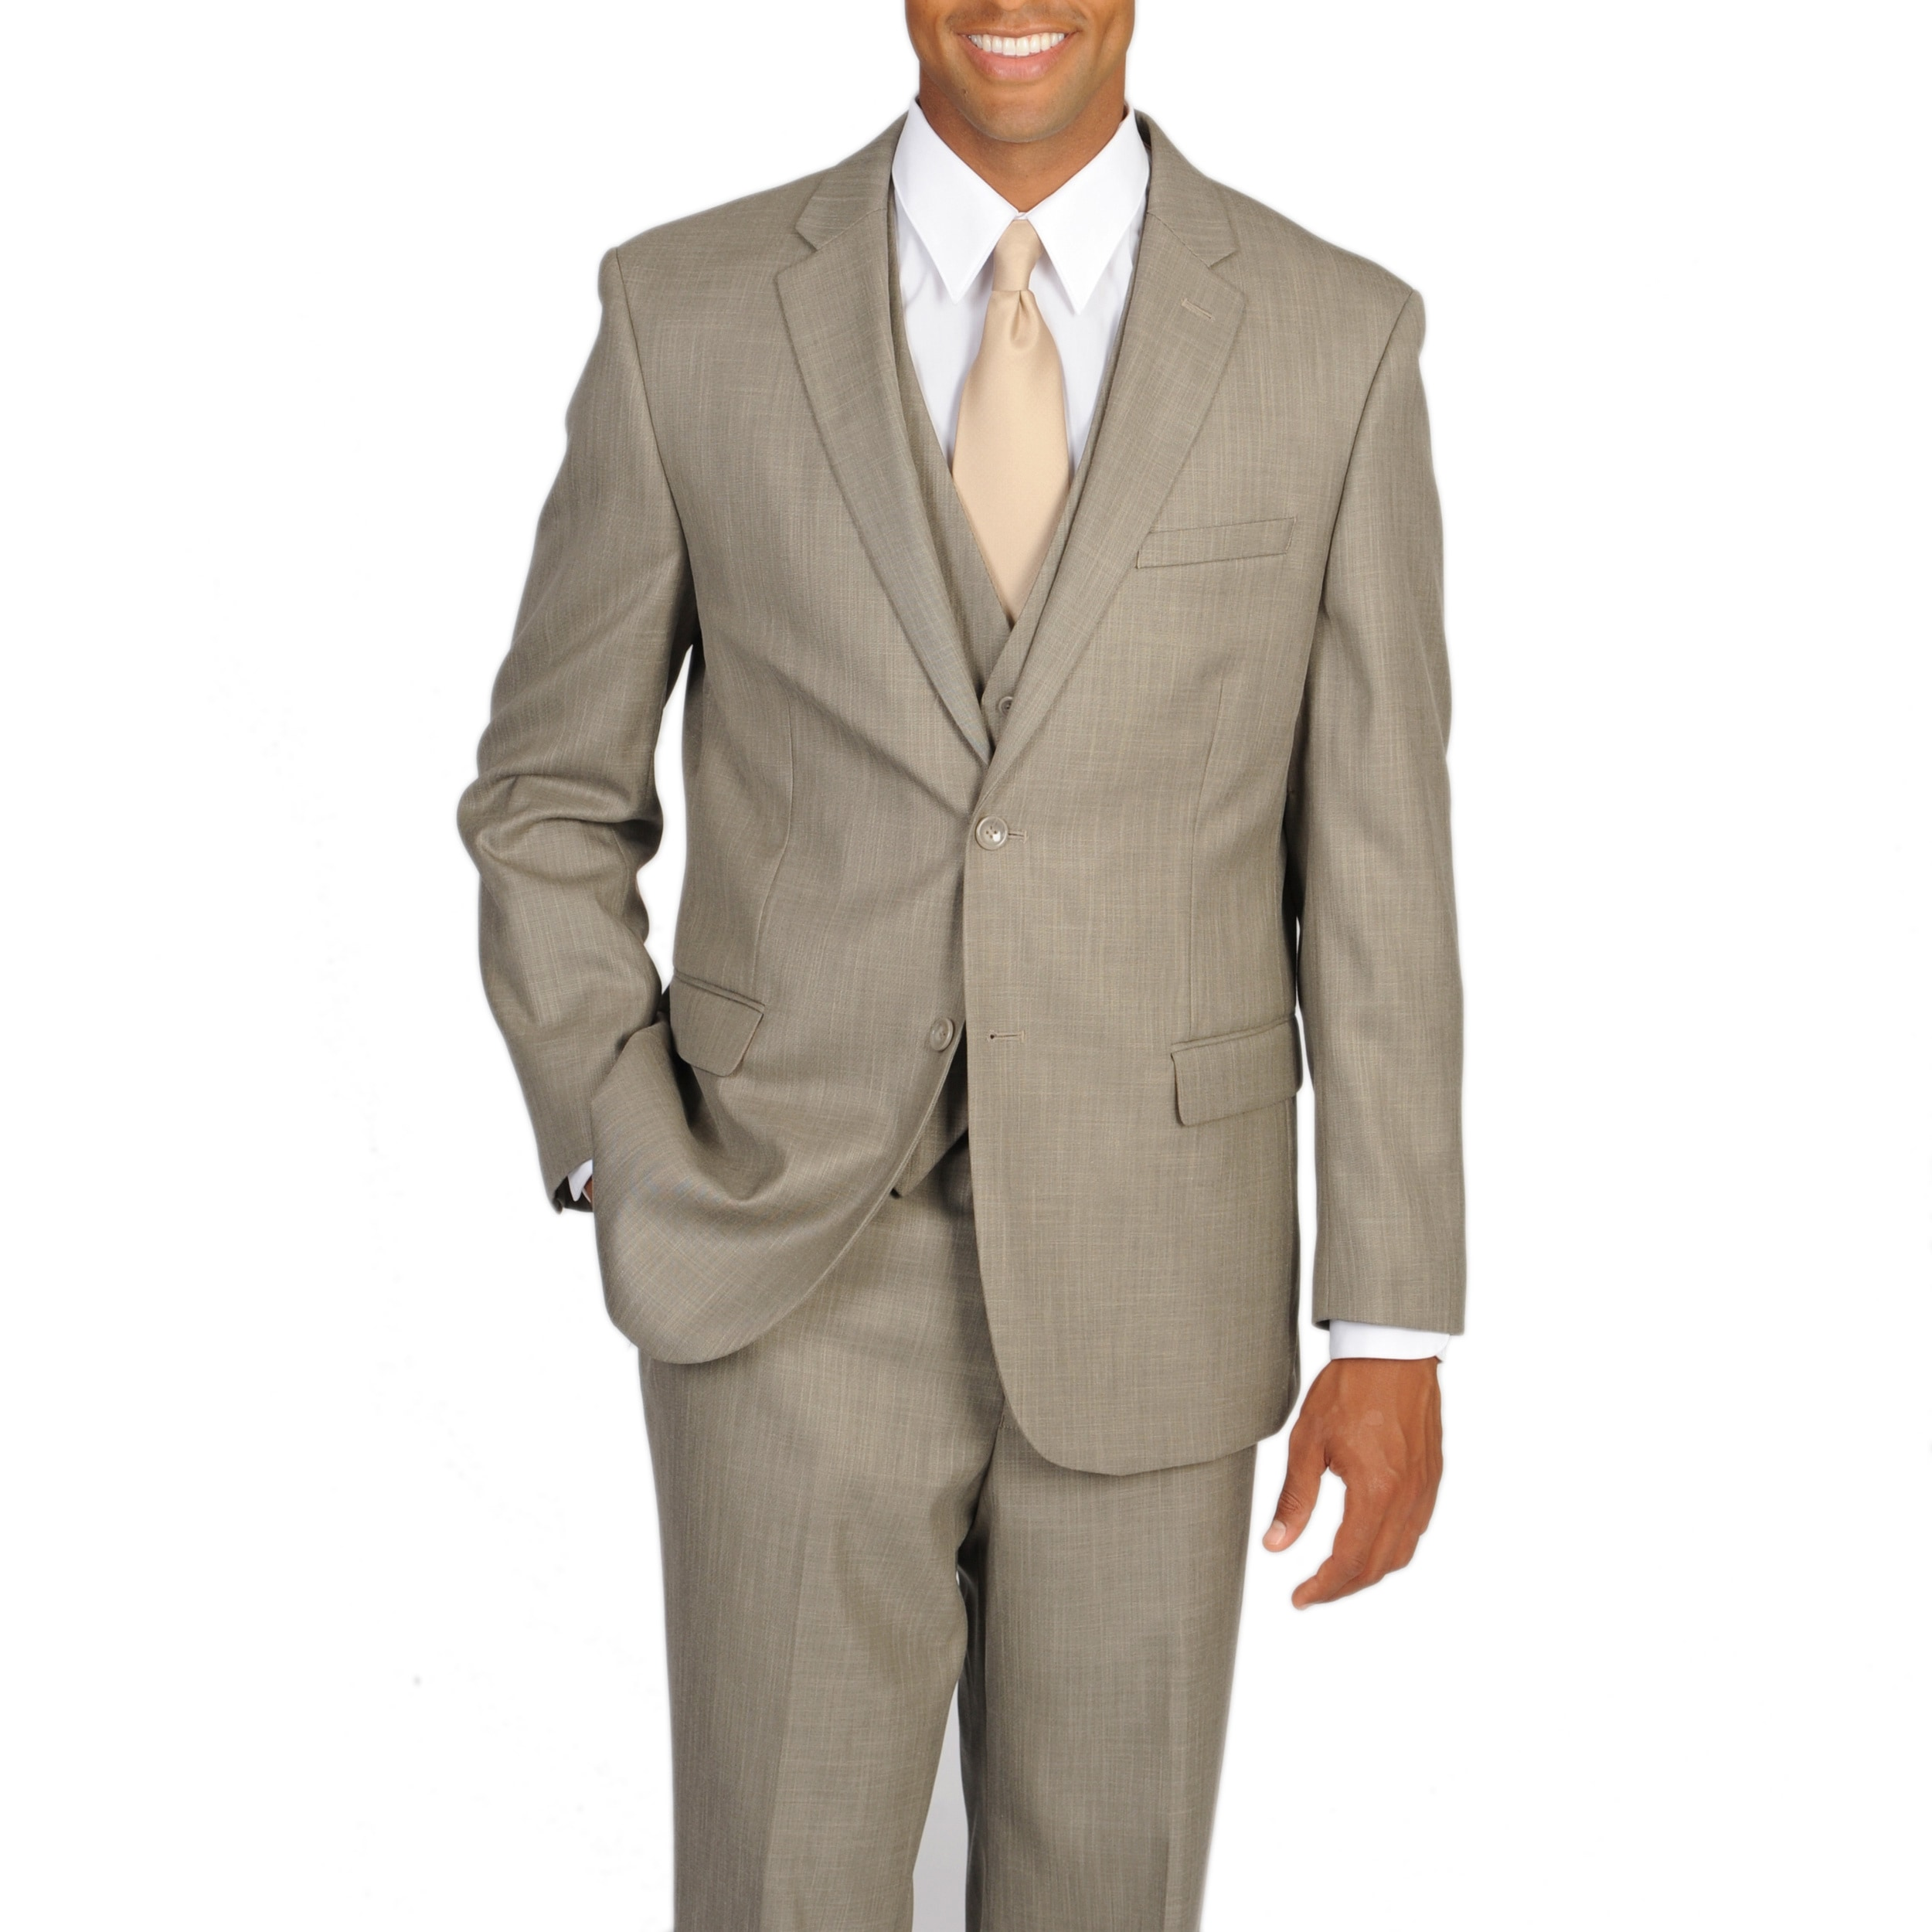 Big men clothing stores Clothing stores